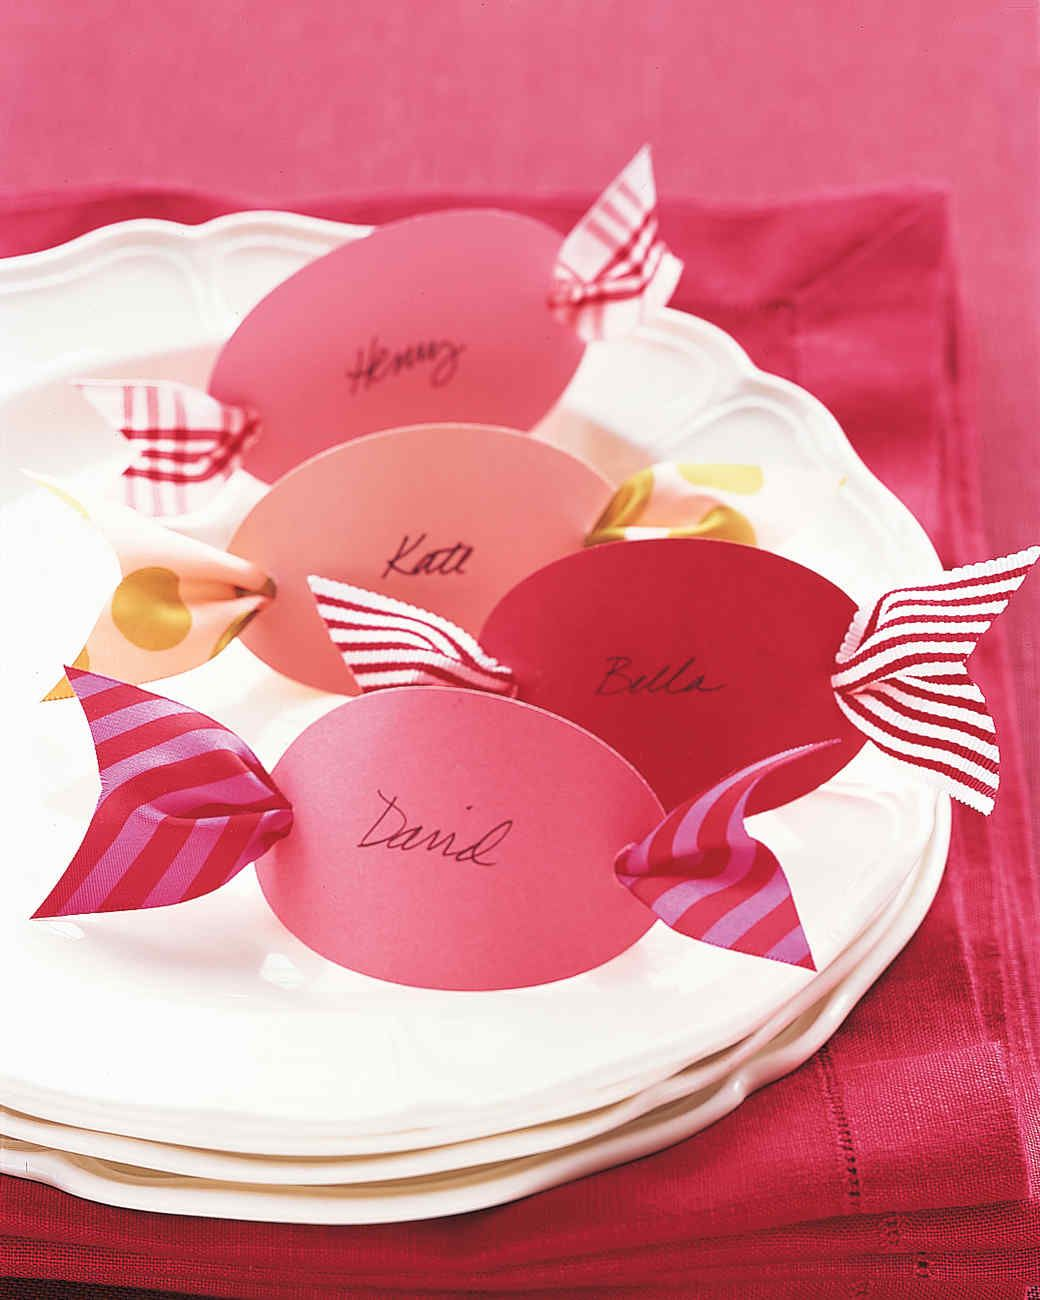 Set your table for a holiday get-together with our homemade place cards.